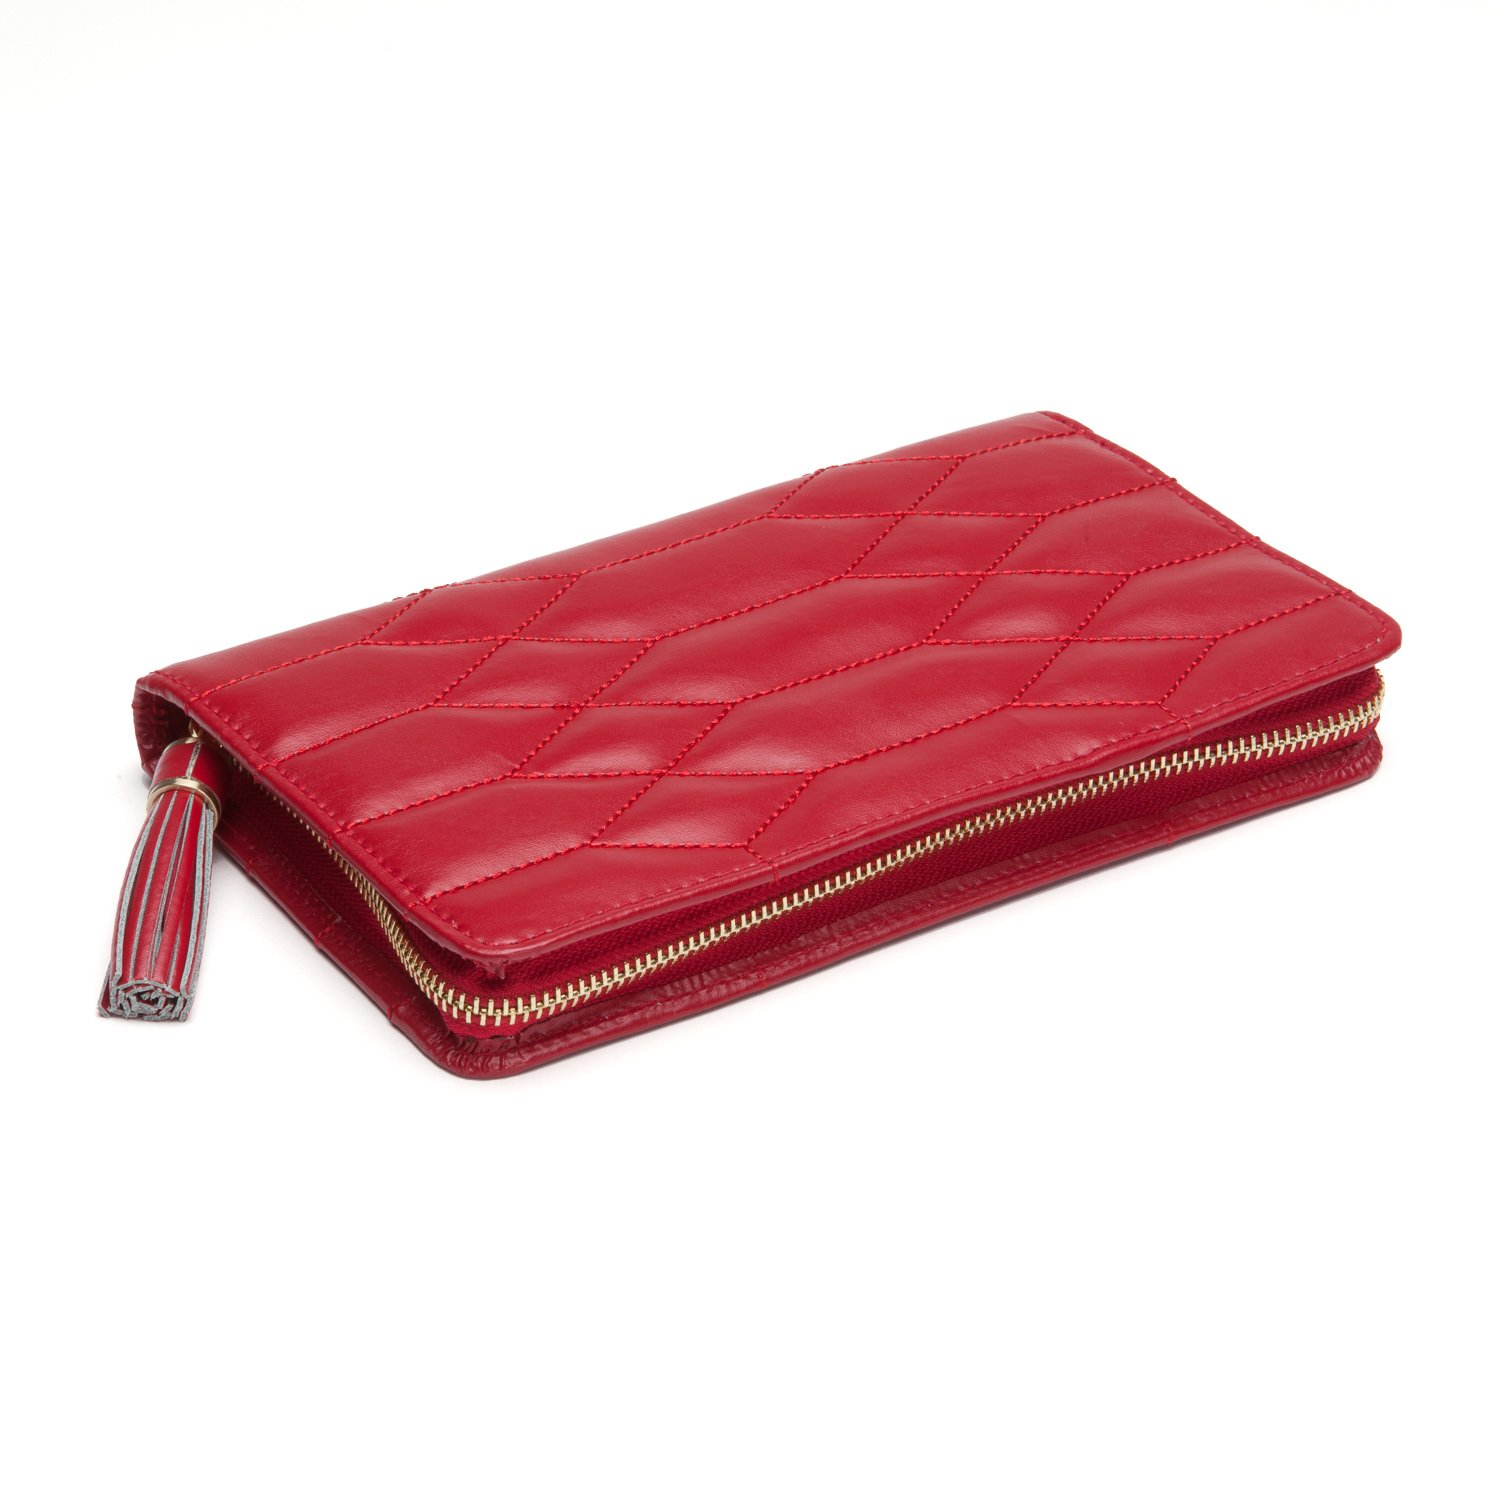 WOLF 324872 Caroline Jewelry Portfolio, Red by WOLF